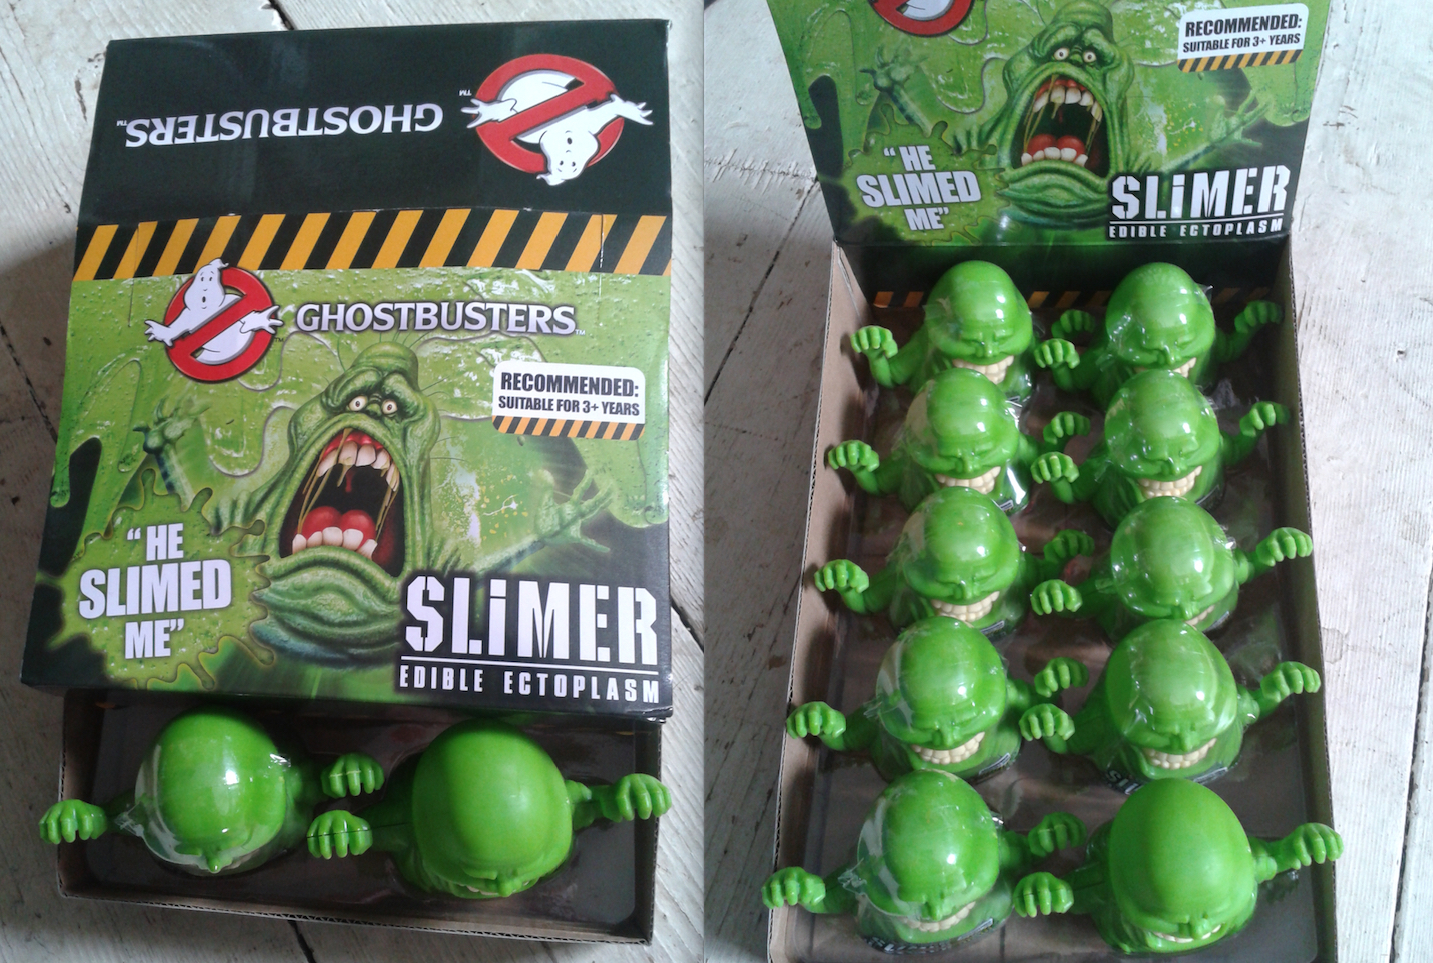 Slimer Edible Ectoplasm Display Box - Ghostbusters